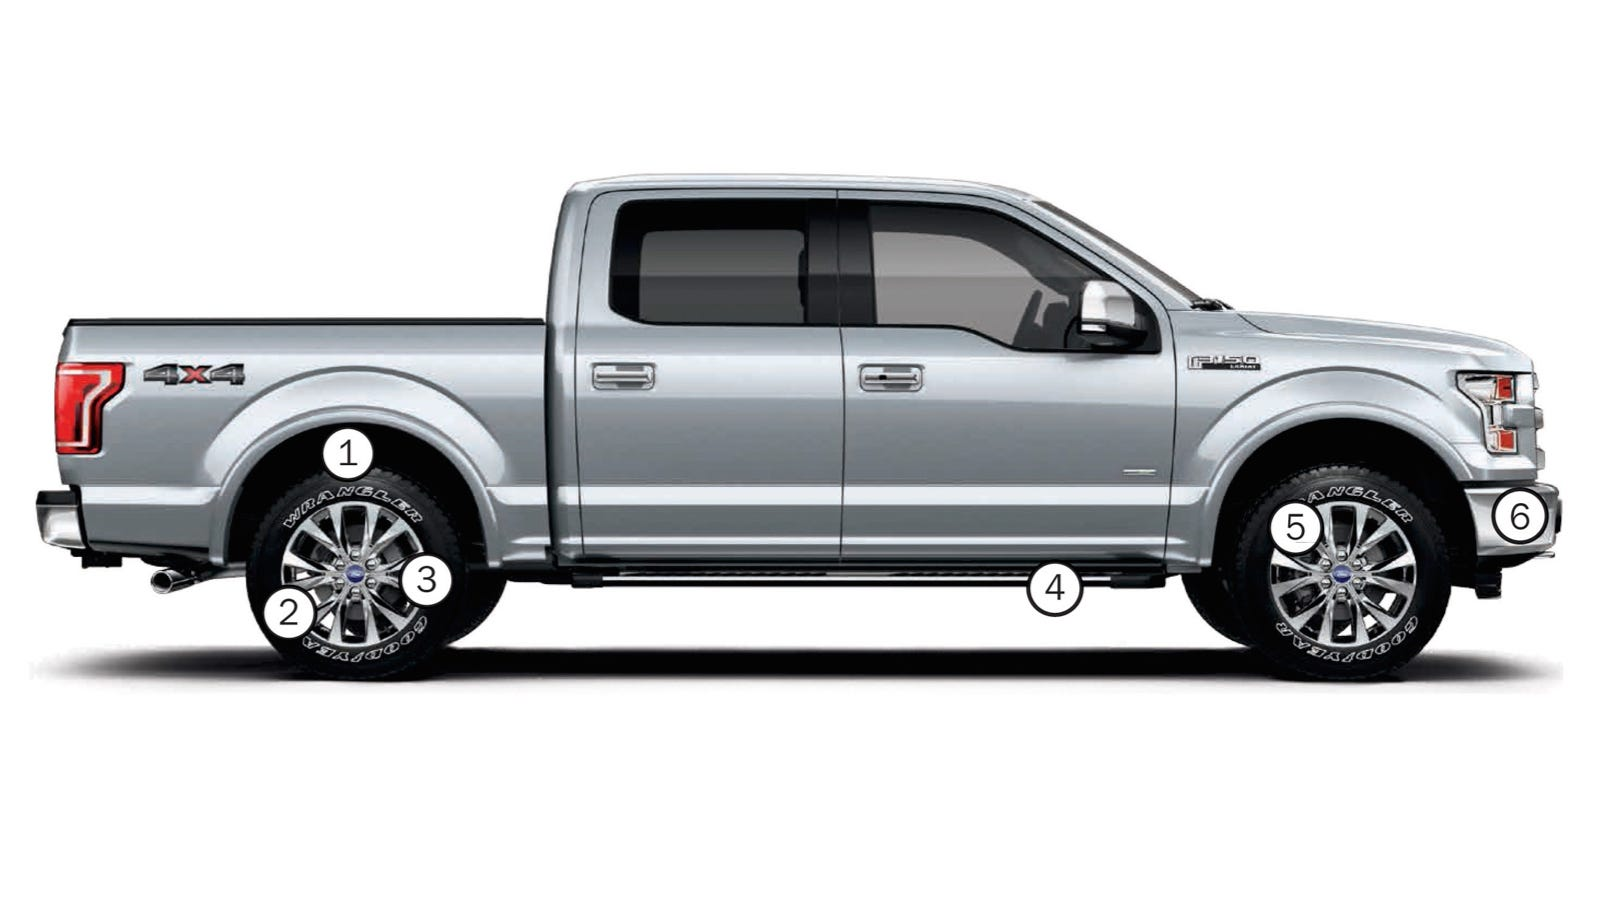 Ford Aluminum Body >> Exactly Where The 2015 Ford F-150 Lost Weight, Below The